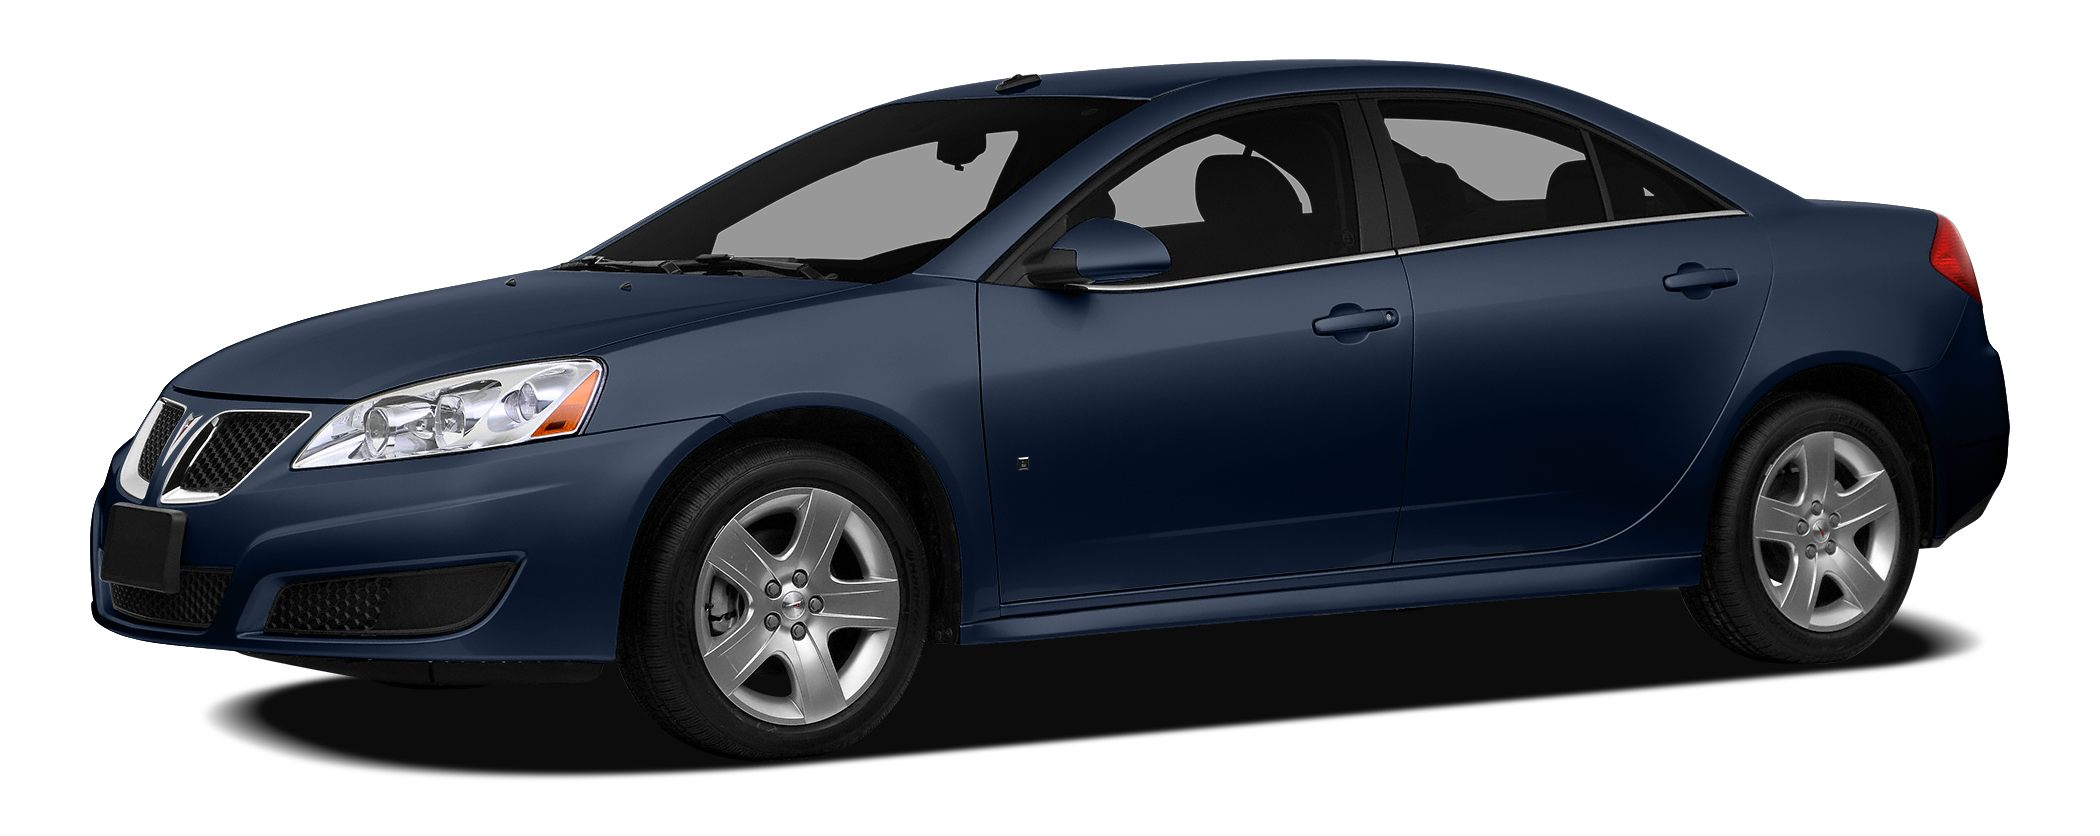 2010 Pontiac G6 Base Proudly serving manatee county for over 60 years offering Cars Trucks SUVs